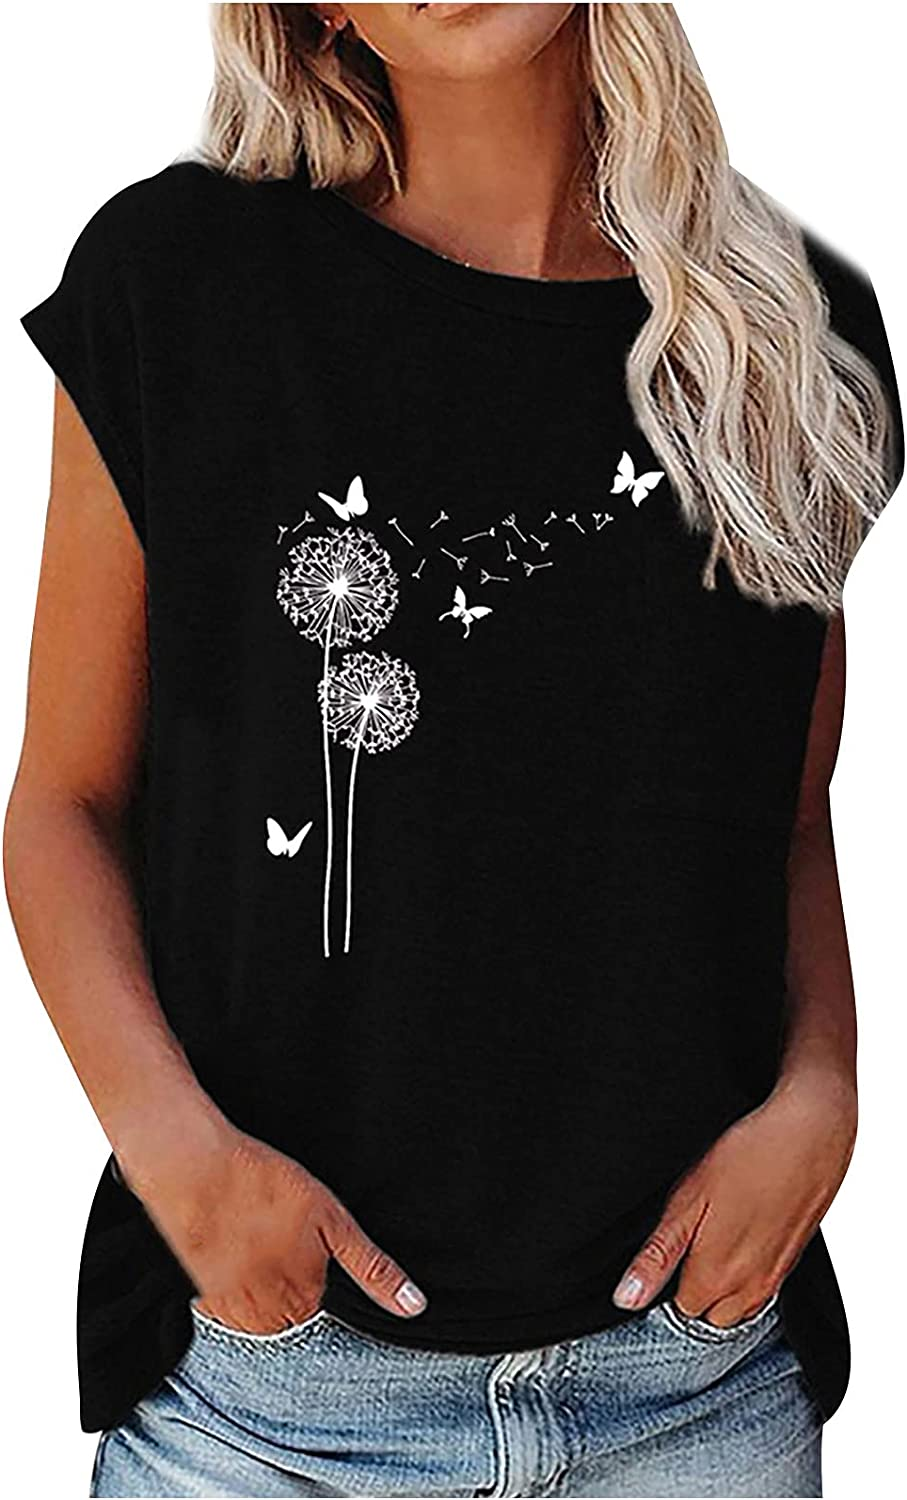 TARIENDY Dandelion Print Tees for Women Casual Comfy T Shirts Short Sleeve Tops Crew Neck Blouse